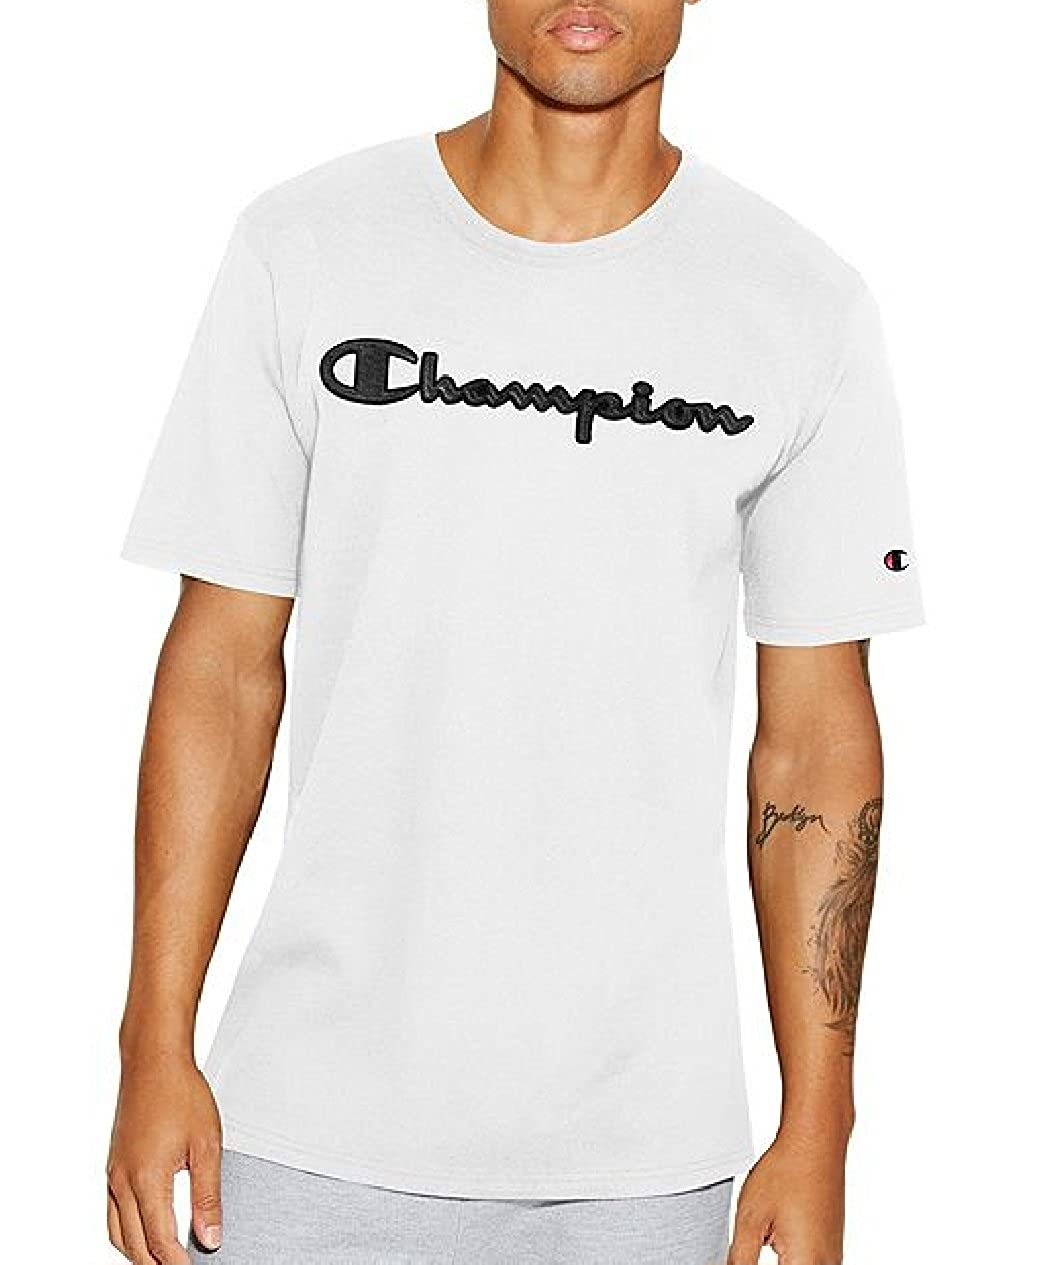 fe3ba817 Amazon.com: Champion Life Men's Heritage Faux Leather Graphic Logo T-Shirt  (X-Small, White): Clothing